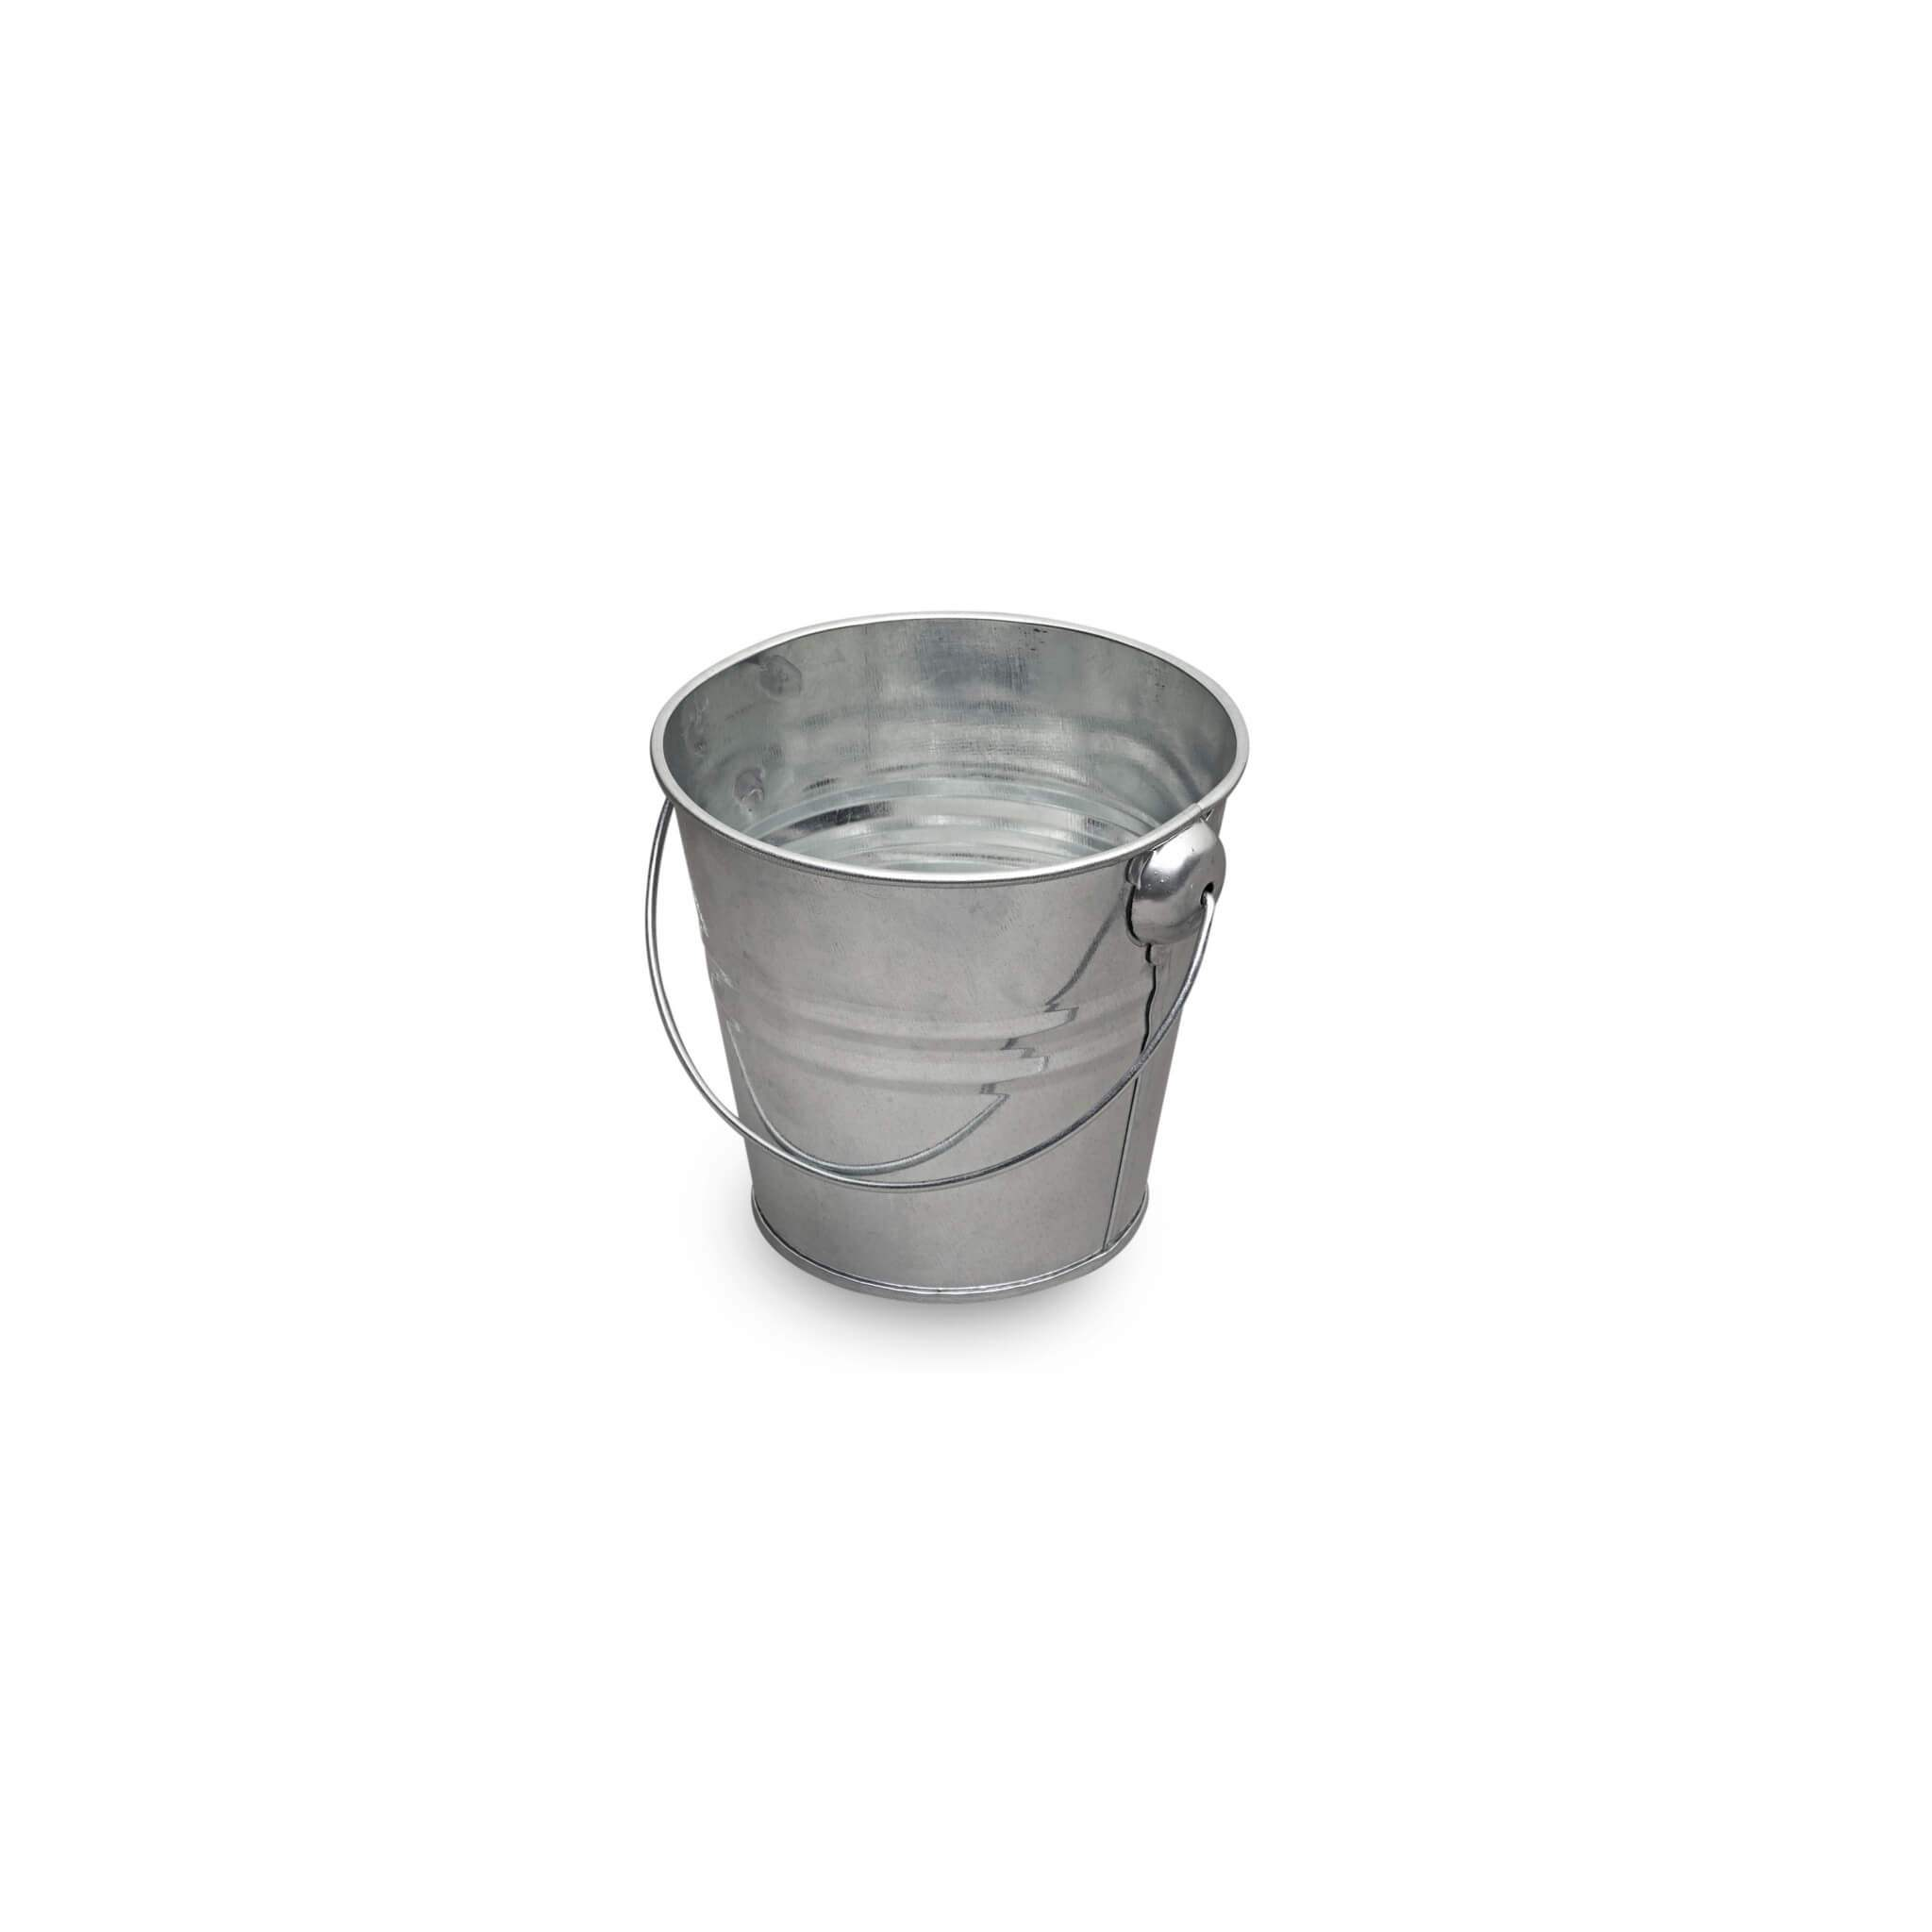 Small galvanised metal bucket for Small pail buckets